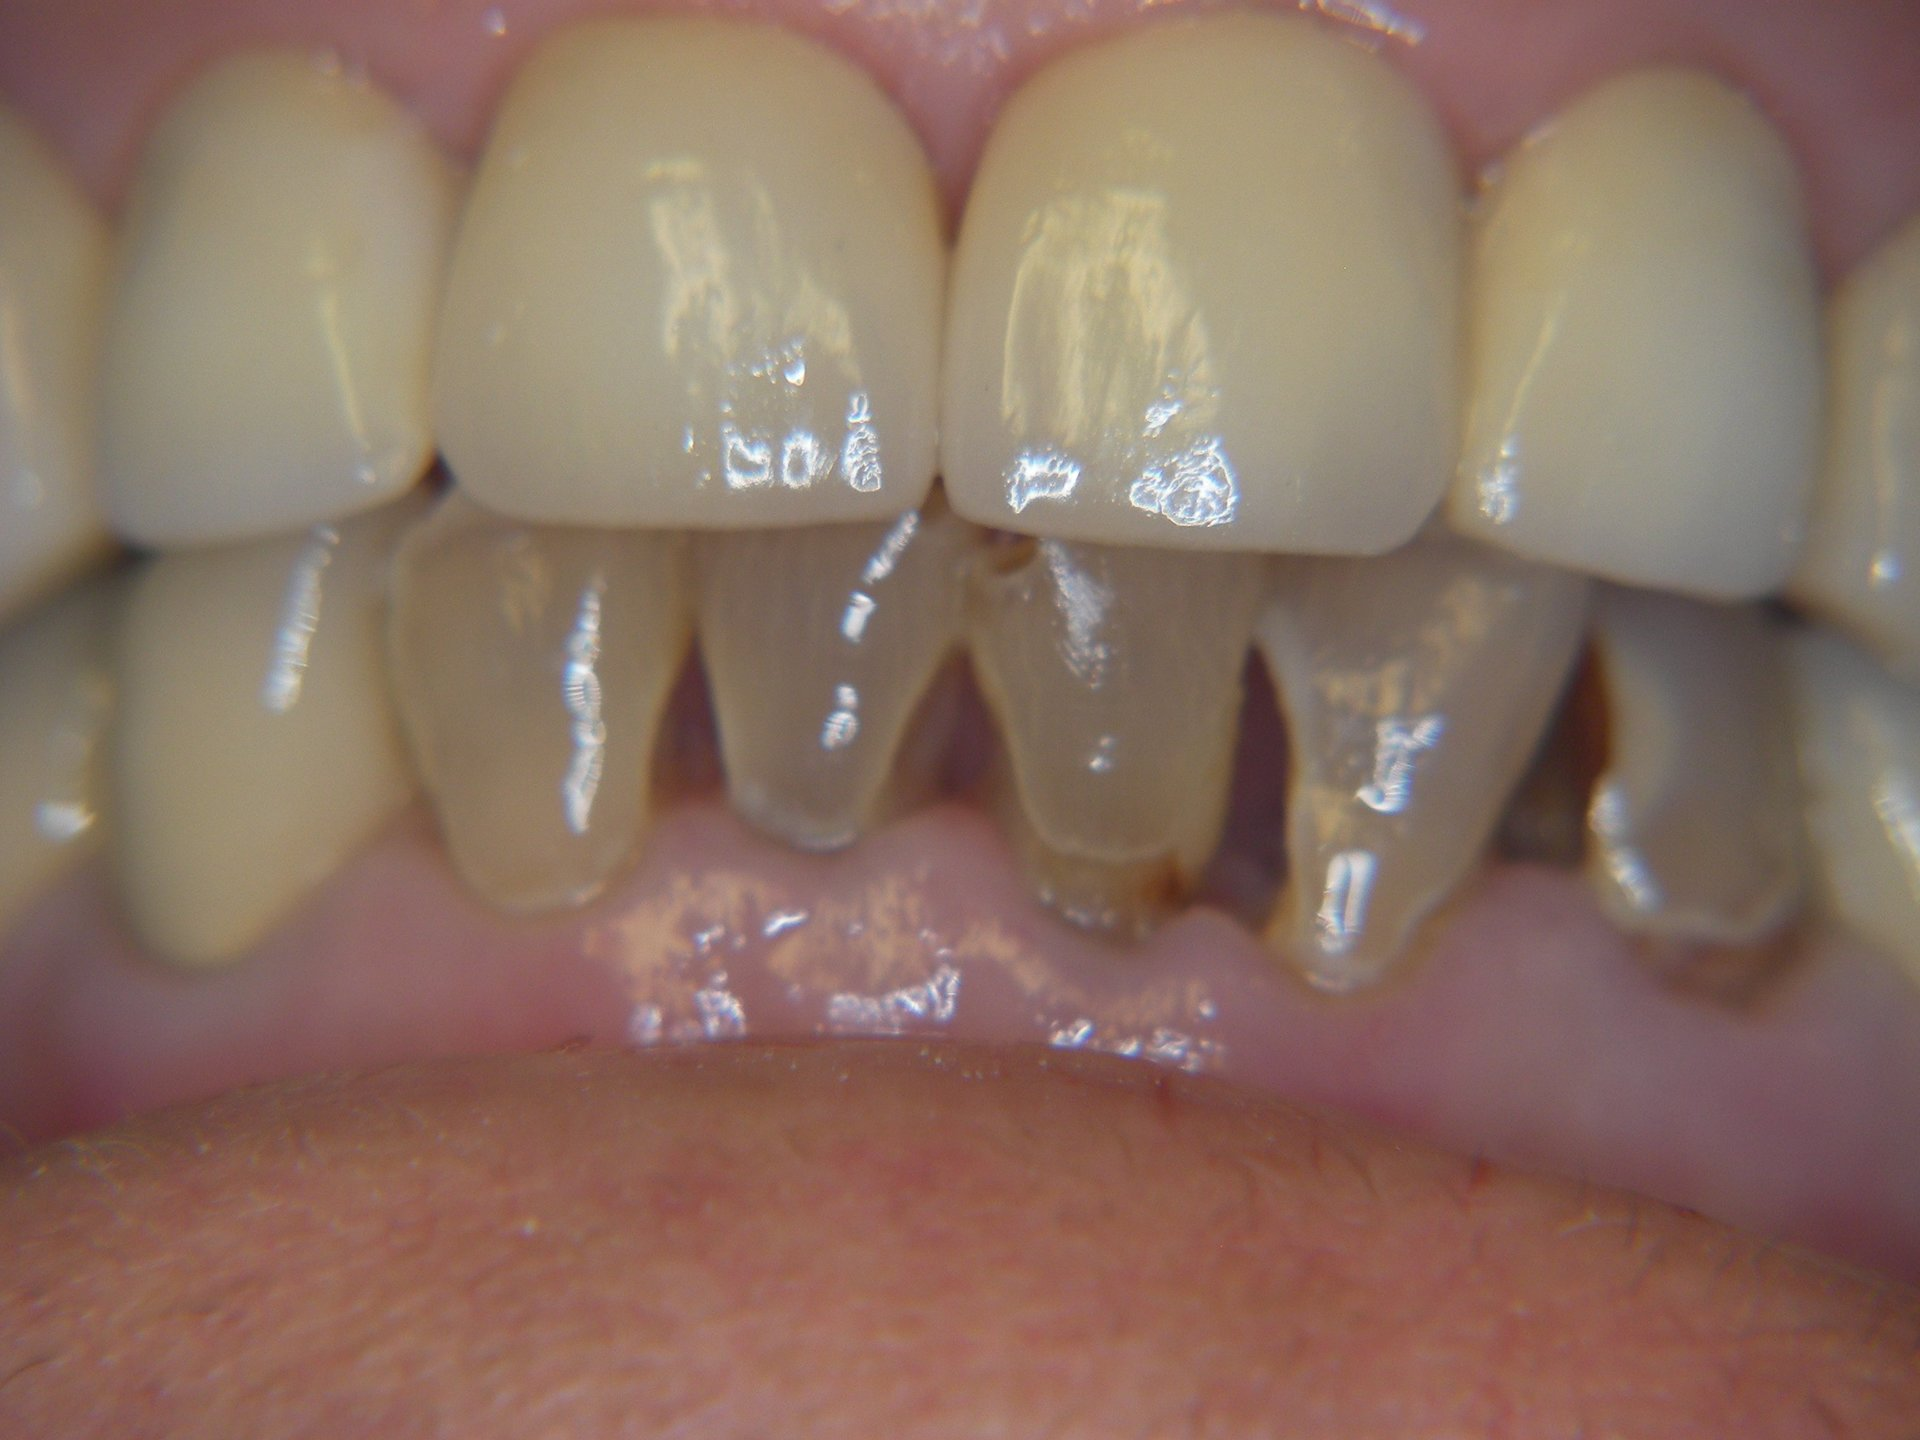 Reconstruction using implant dentistry